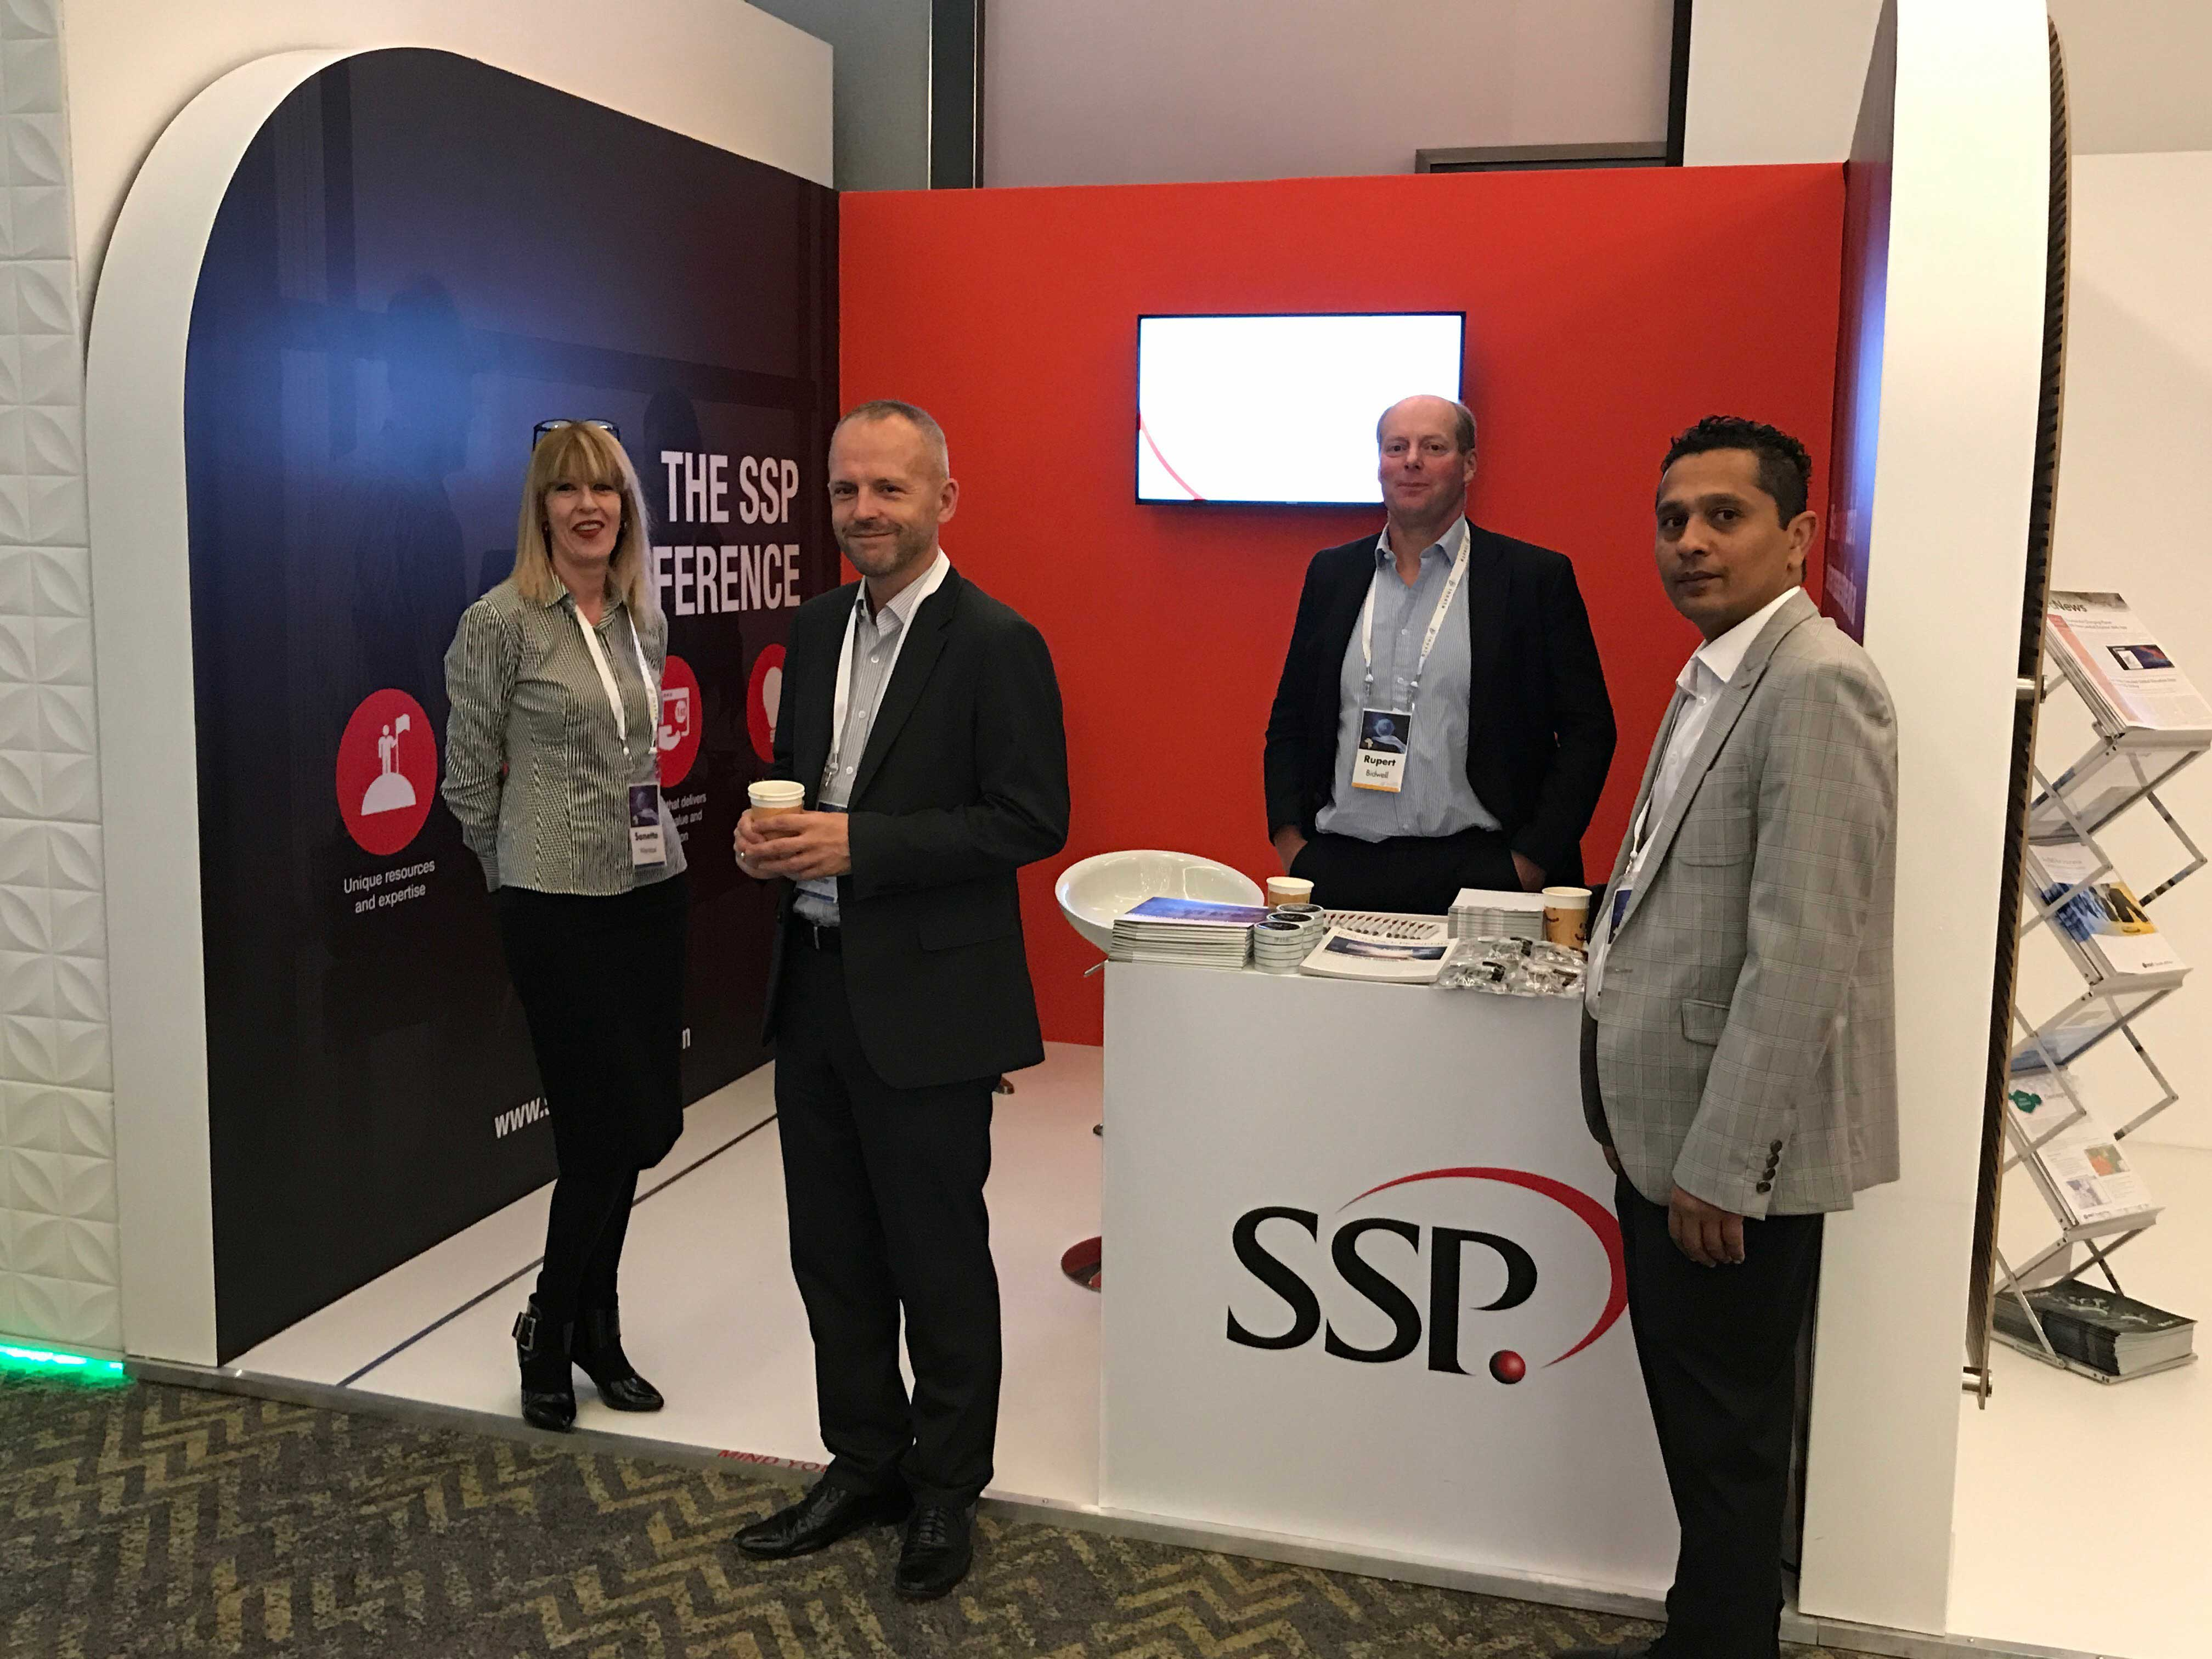 SSP #TIC2017 stand 42